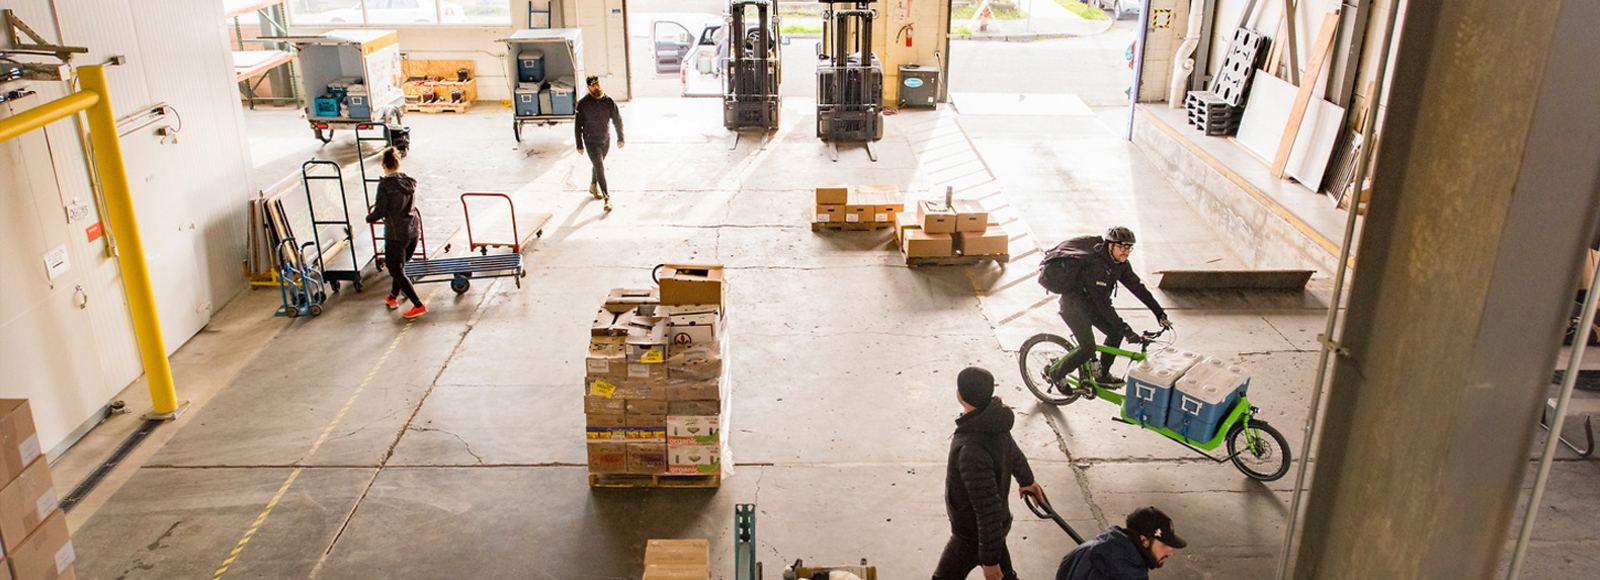 brightly lit warehouse with bikes and people walking through